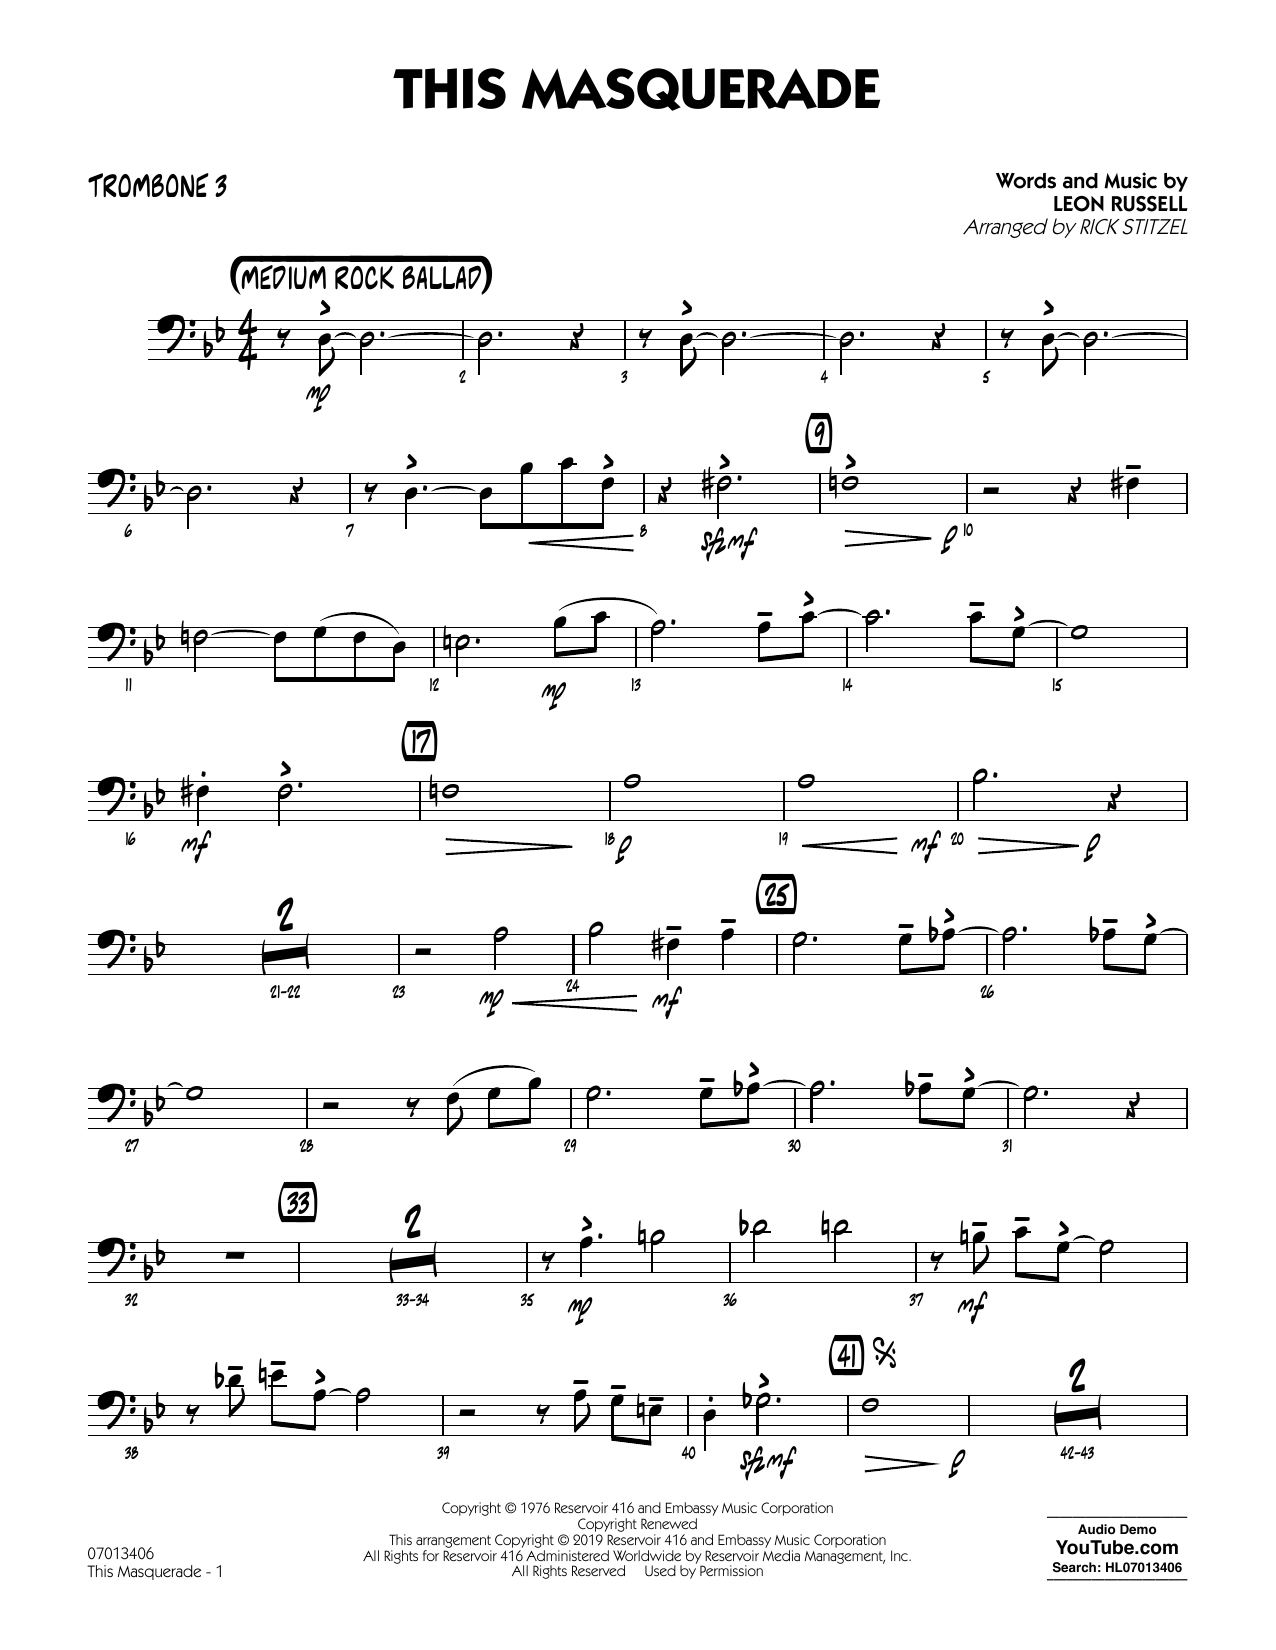 Leon Russell This Masquerade (arr. Rick Stitzel) - Trombone 3 sheet music notes and chords. Download Printable PDF.